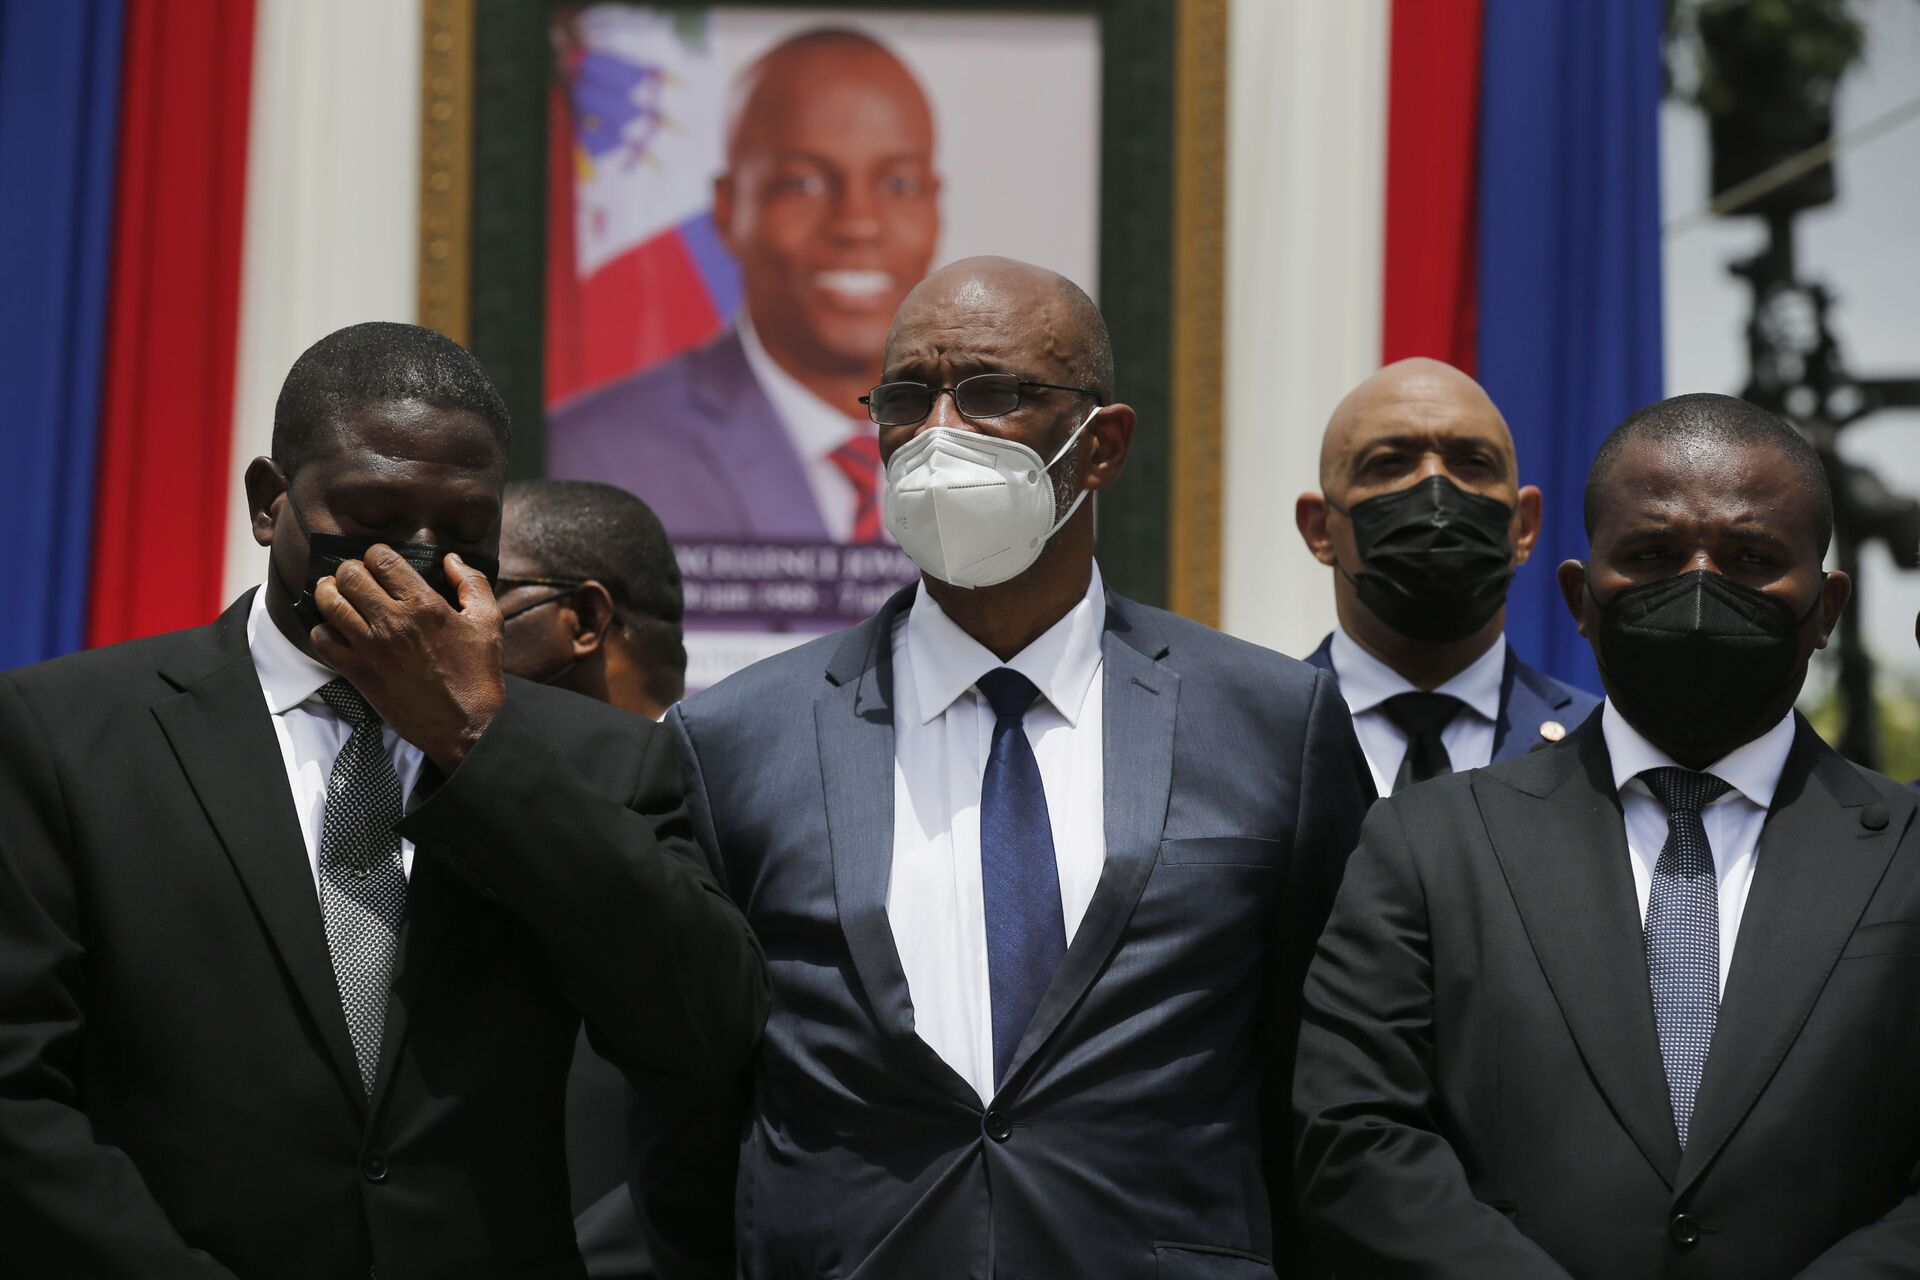 Haiti's designated Prime Minister Ariel Henry, center, and interim Prime Minister Claude Joseph, right, pose for a group photo with other authorities in front of a portrait of late Haitian President Jovenel Moise at at the National Pantheon Museum during a memorial service in Port-au-Prince, Haiti, Tuesday, July 20, 2021. - Sputnik International, 1920, 07.09.2021